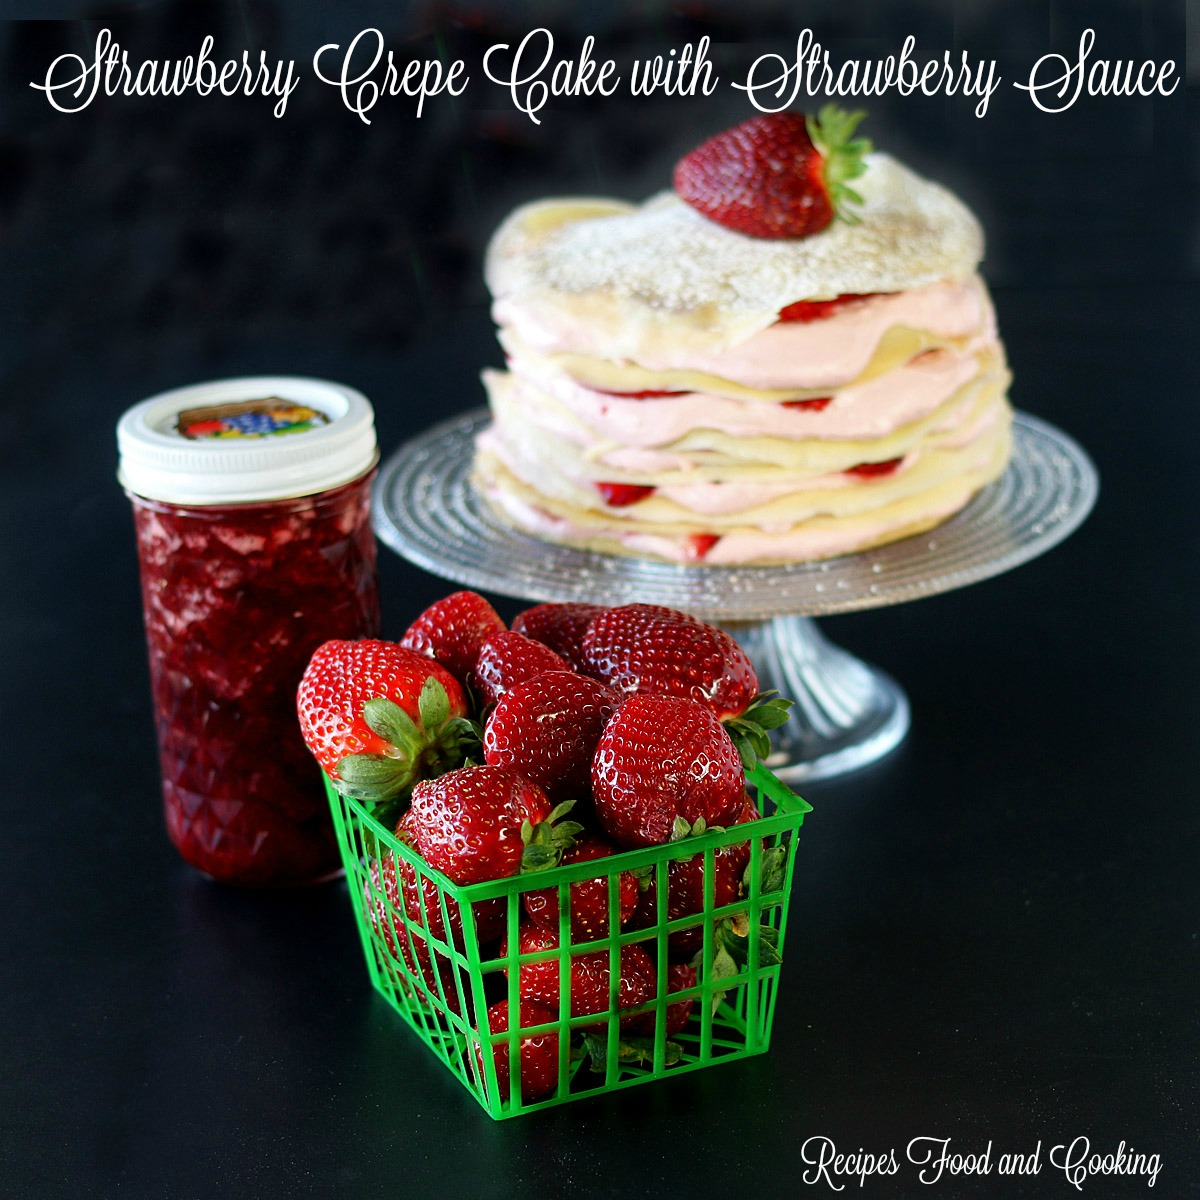 Strawberry Crepe Cake with Strawberry Sauce